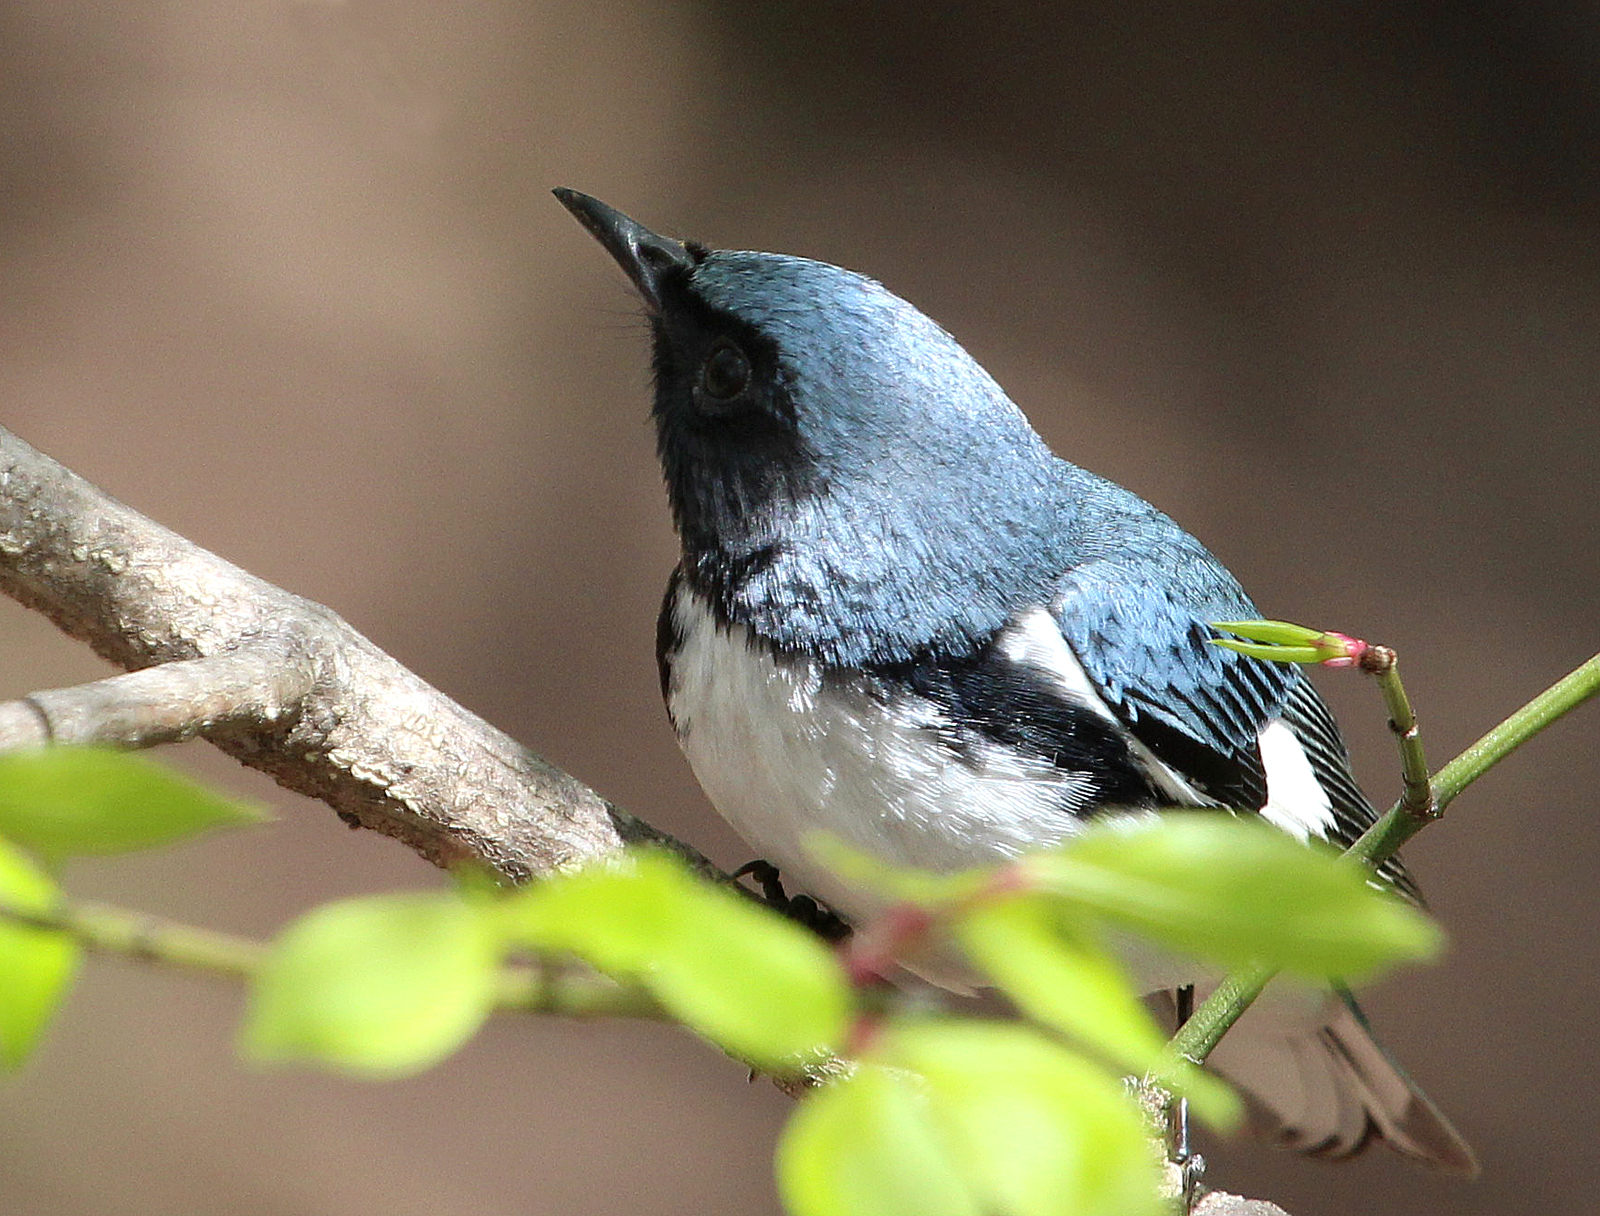 Photo by Chris Bosak A Black-throated Blue Warbler perches in a tree at Selleck's/Dunlap Woods on Sunday, May 4, 2014.